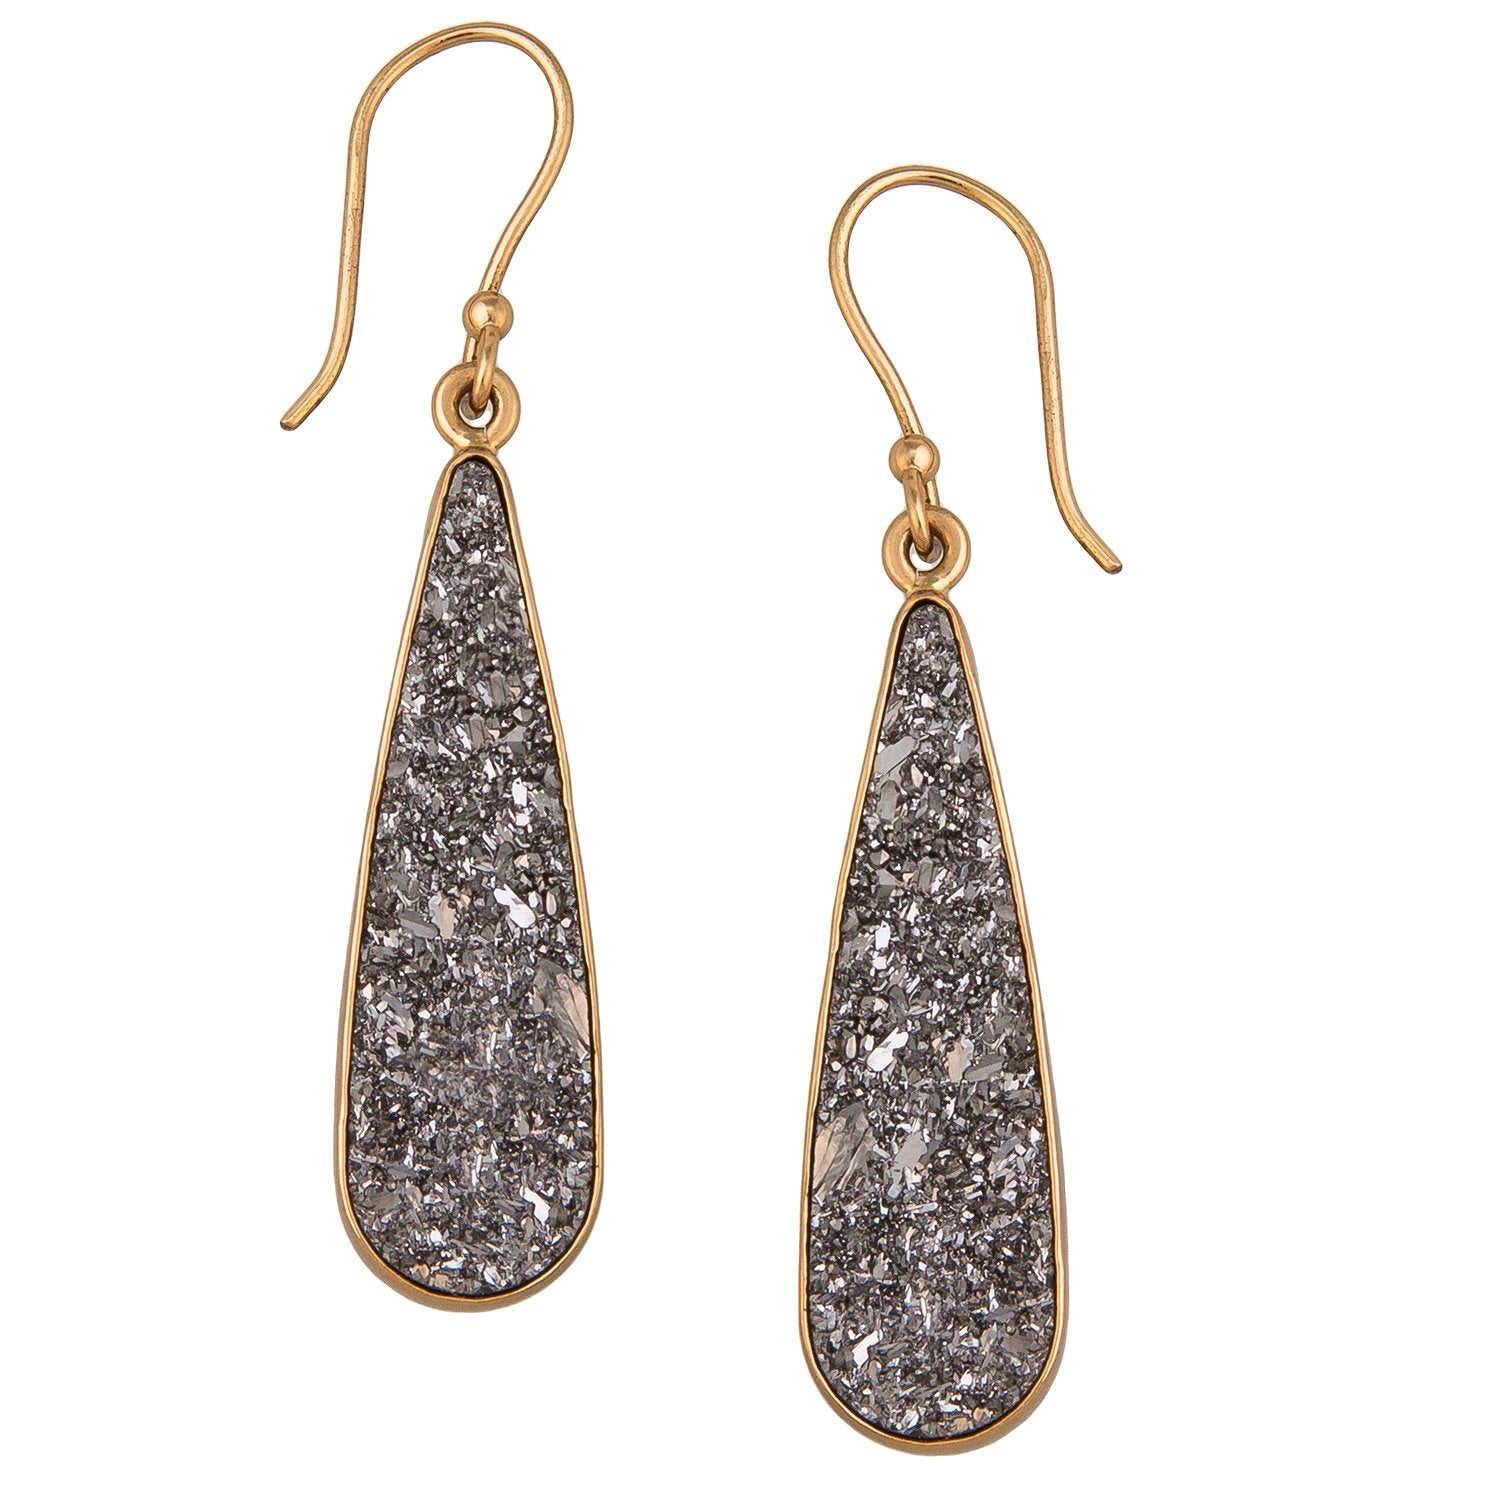 Alchemia Platinum Druse Teardrop Earrings | Charles Albert Jewelry